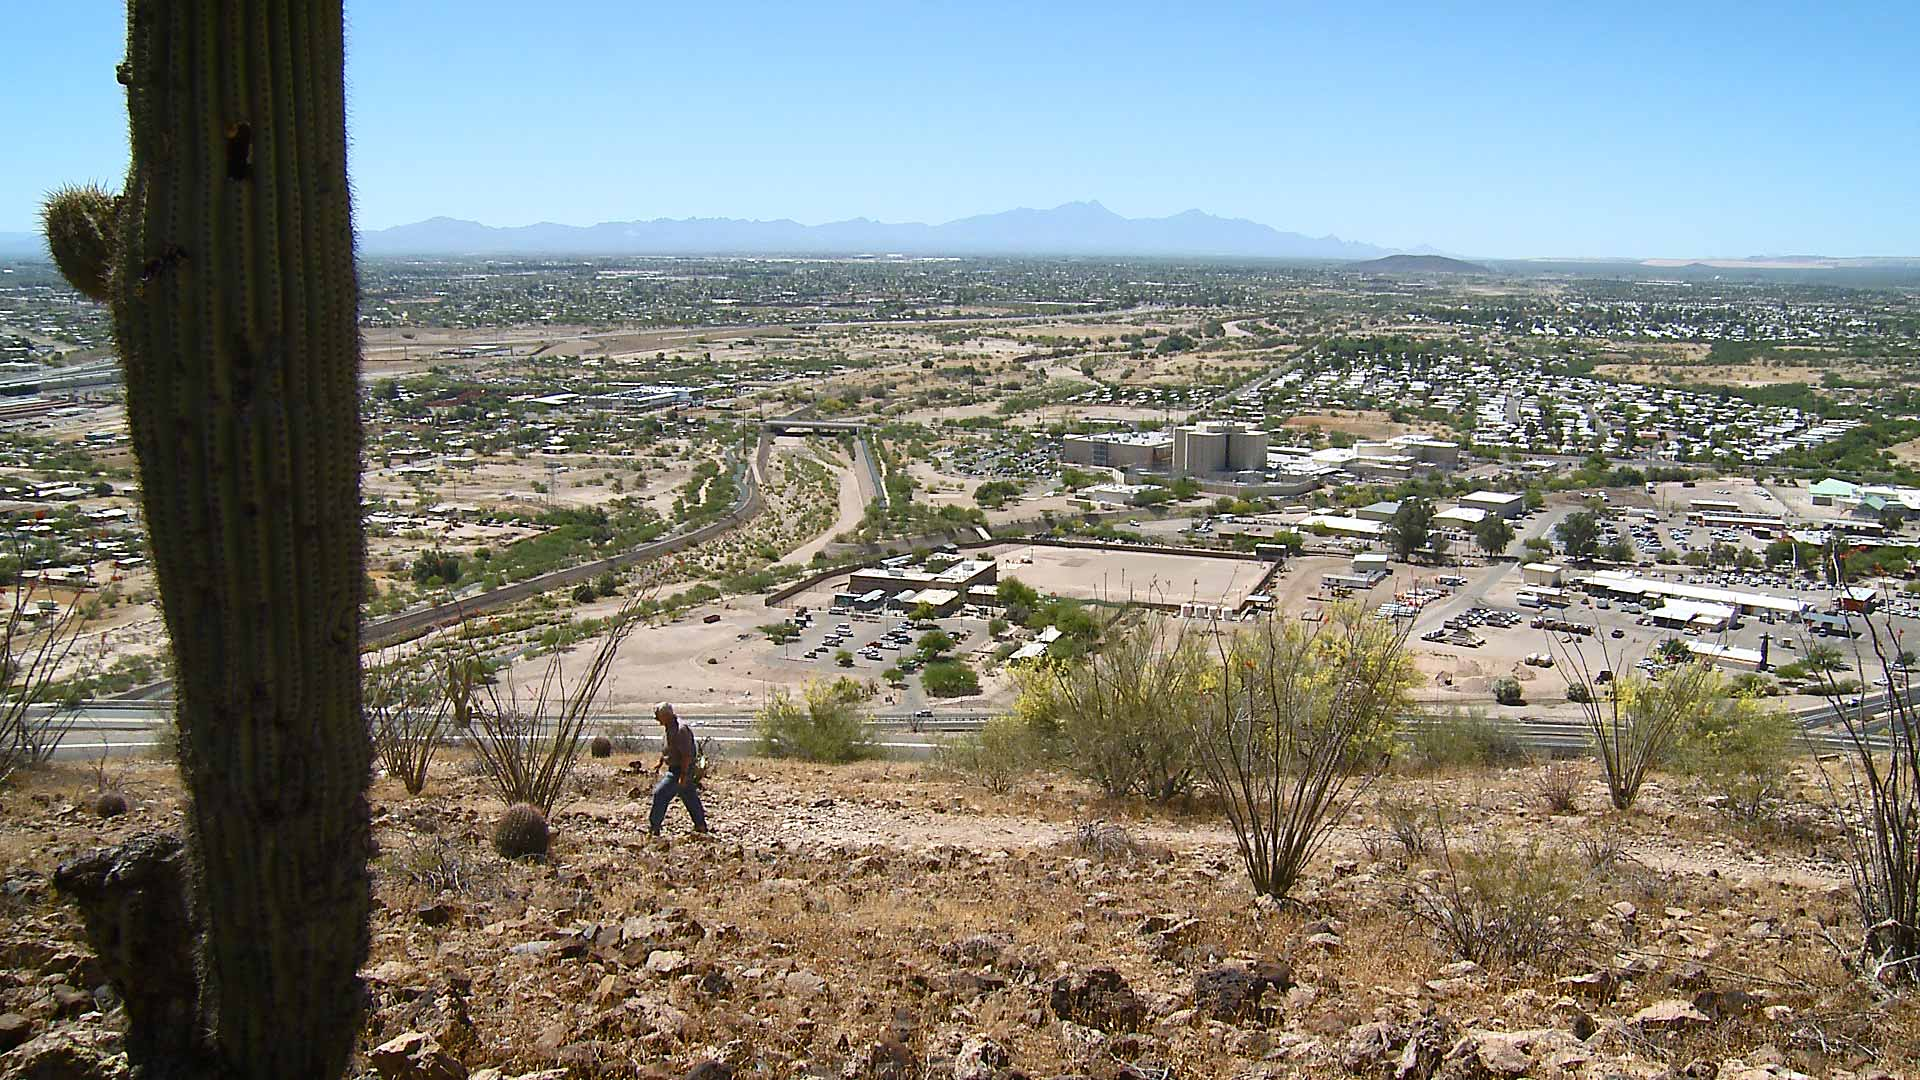 A view of Tucson from a hiking trail on the city's west side.